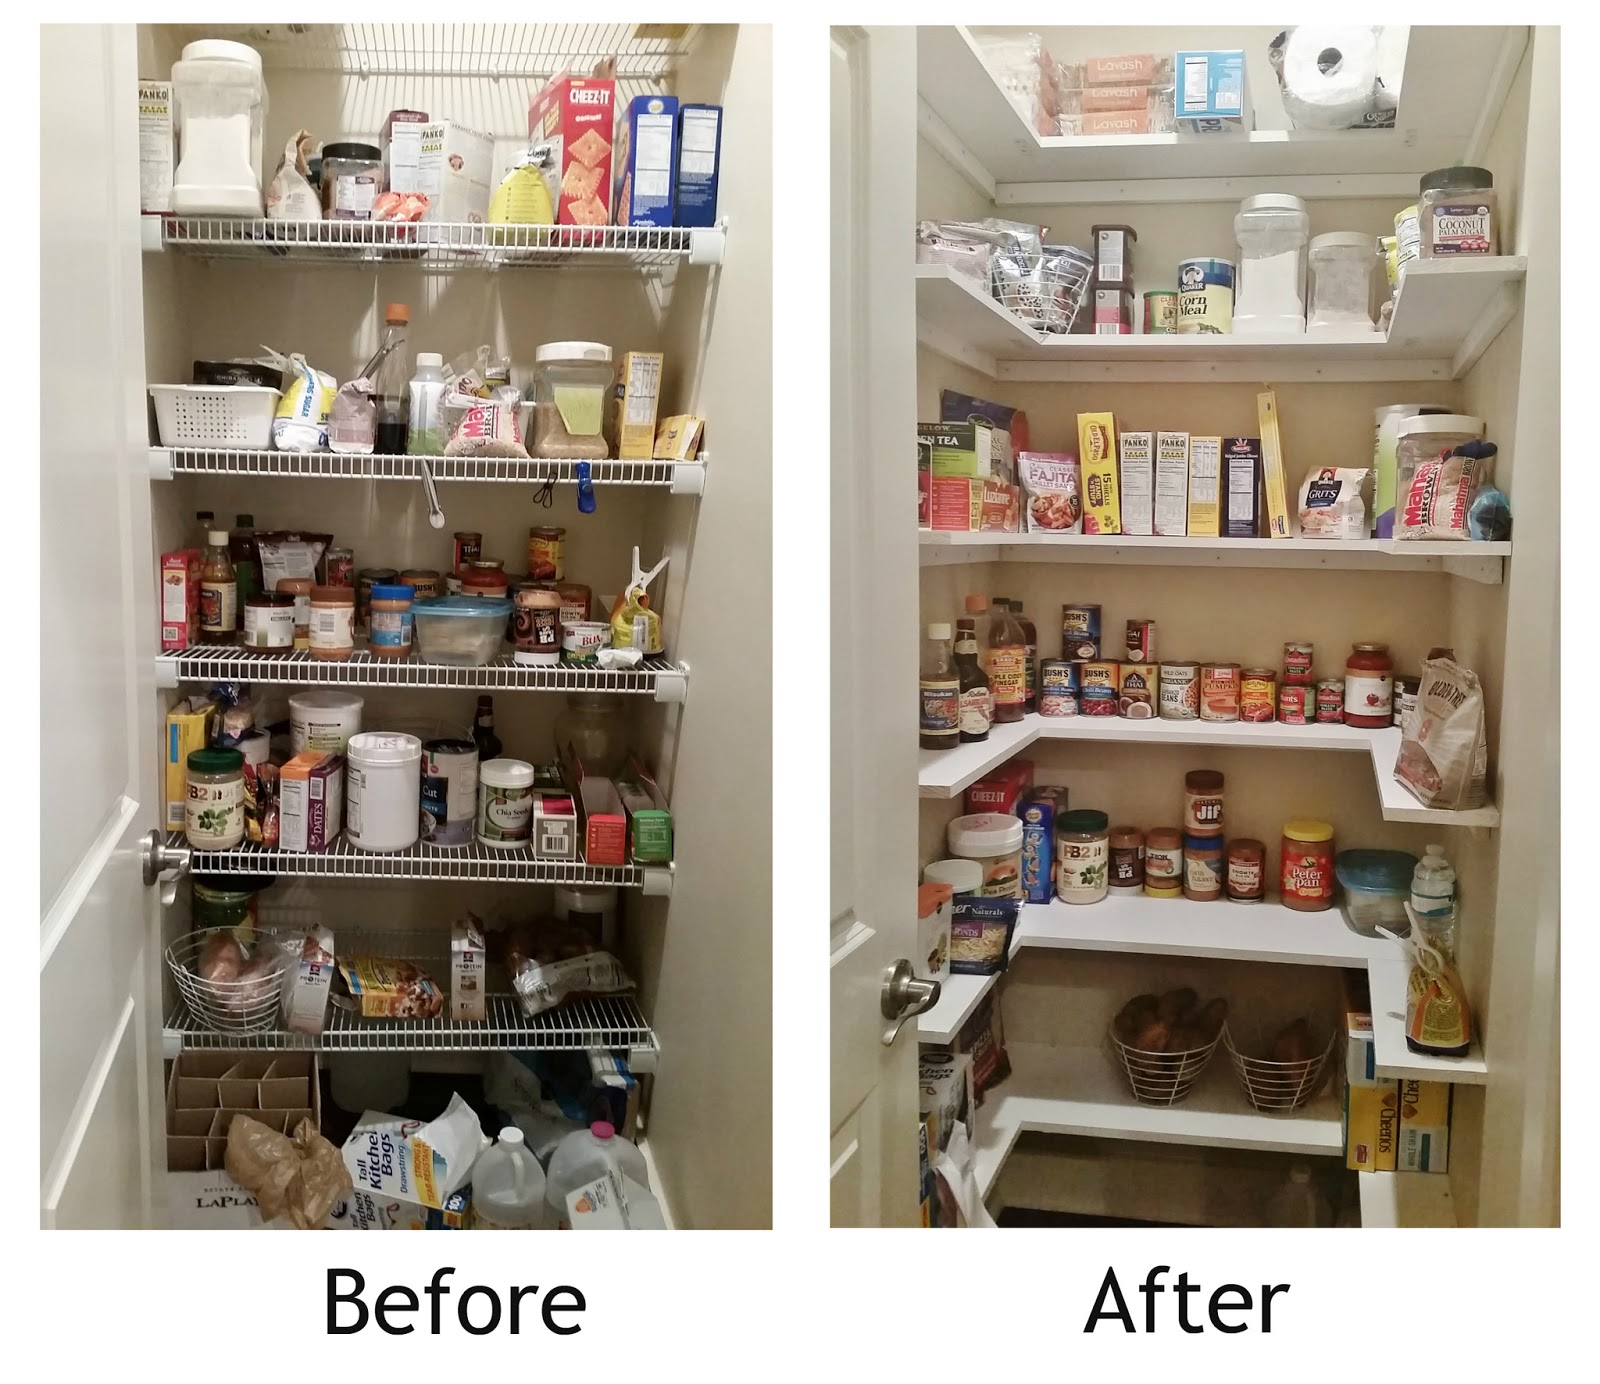 pantry shelving kitchen pantry makeover, replace wire shelves with wrap around wood shelving  for lwgfcvv